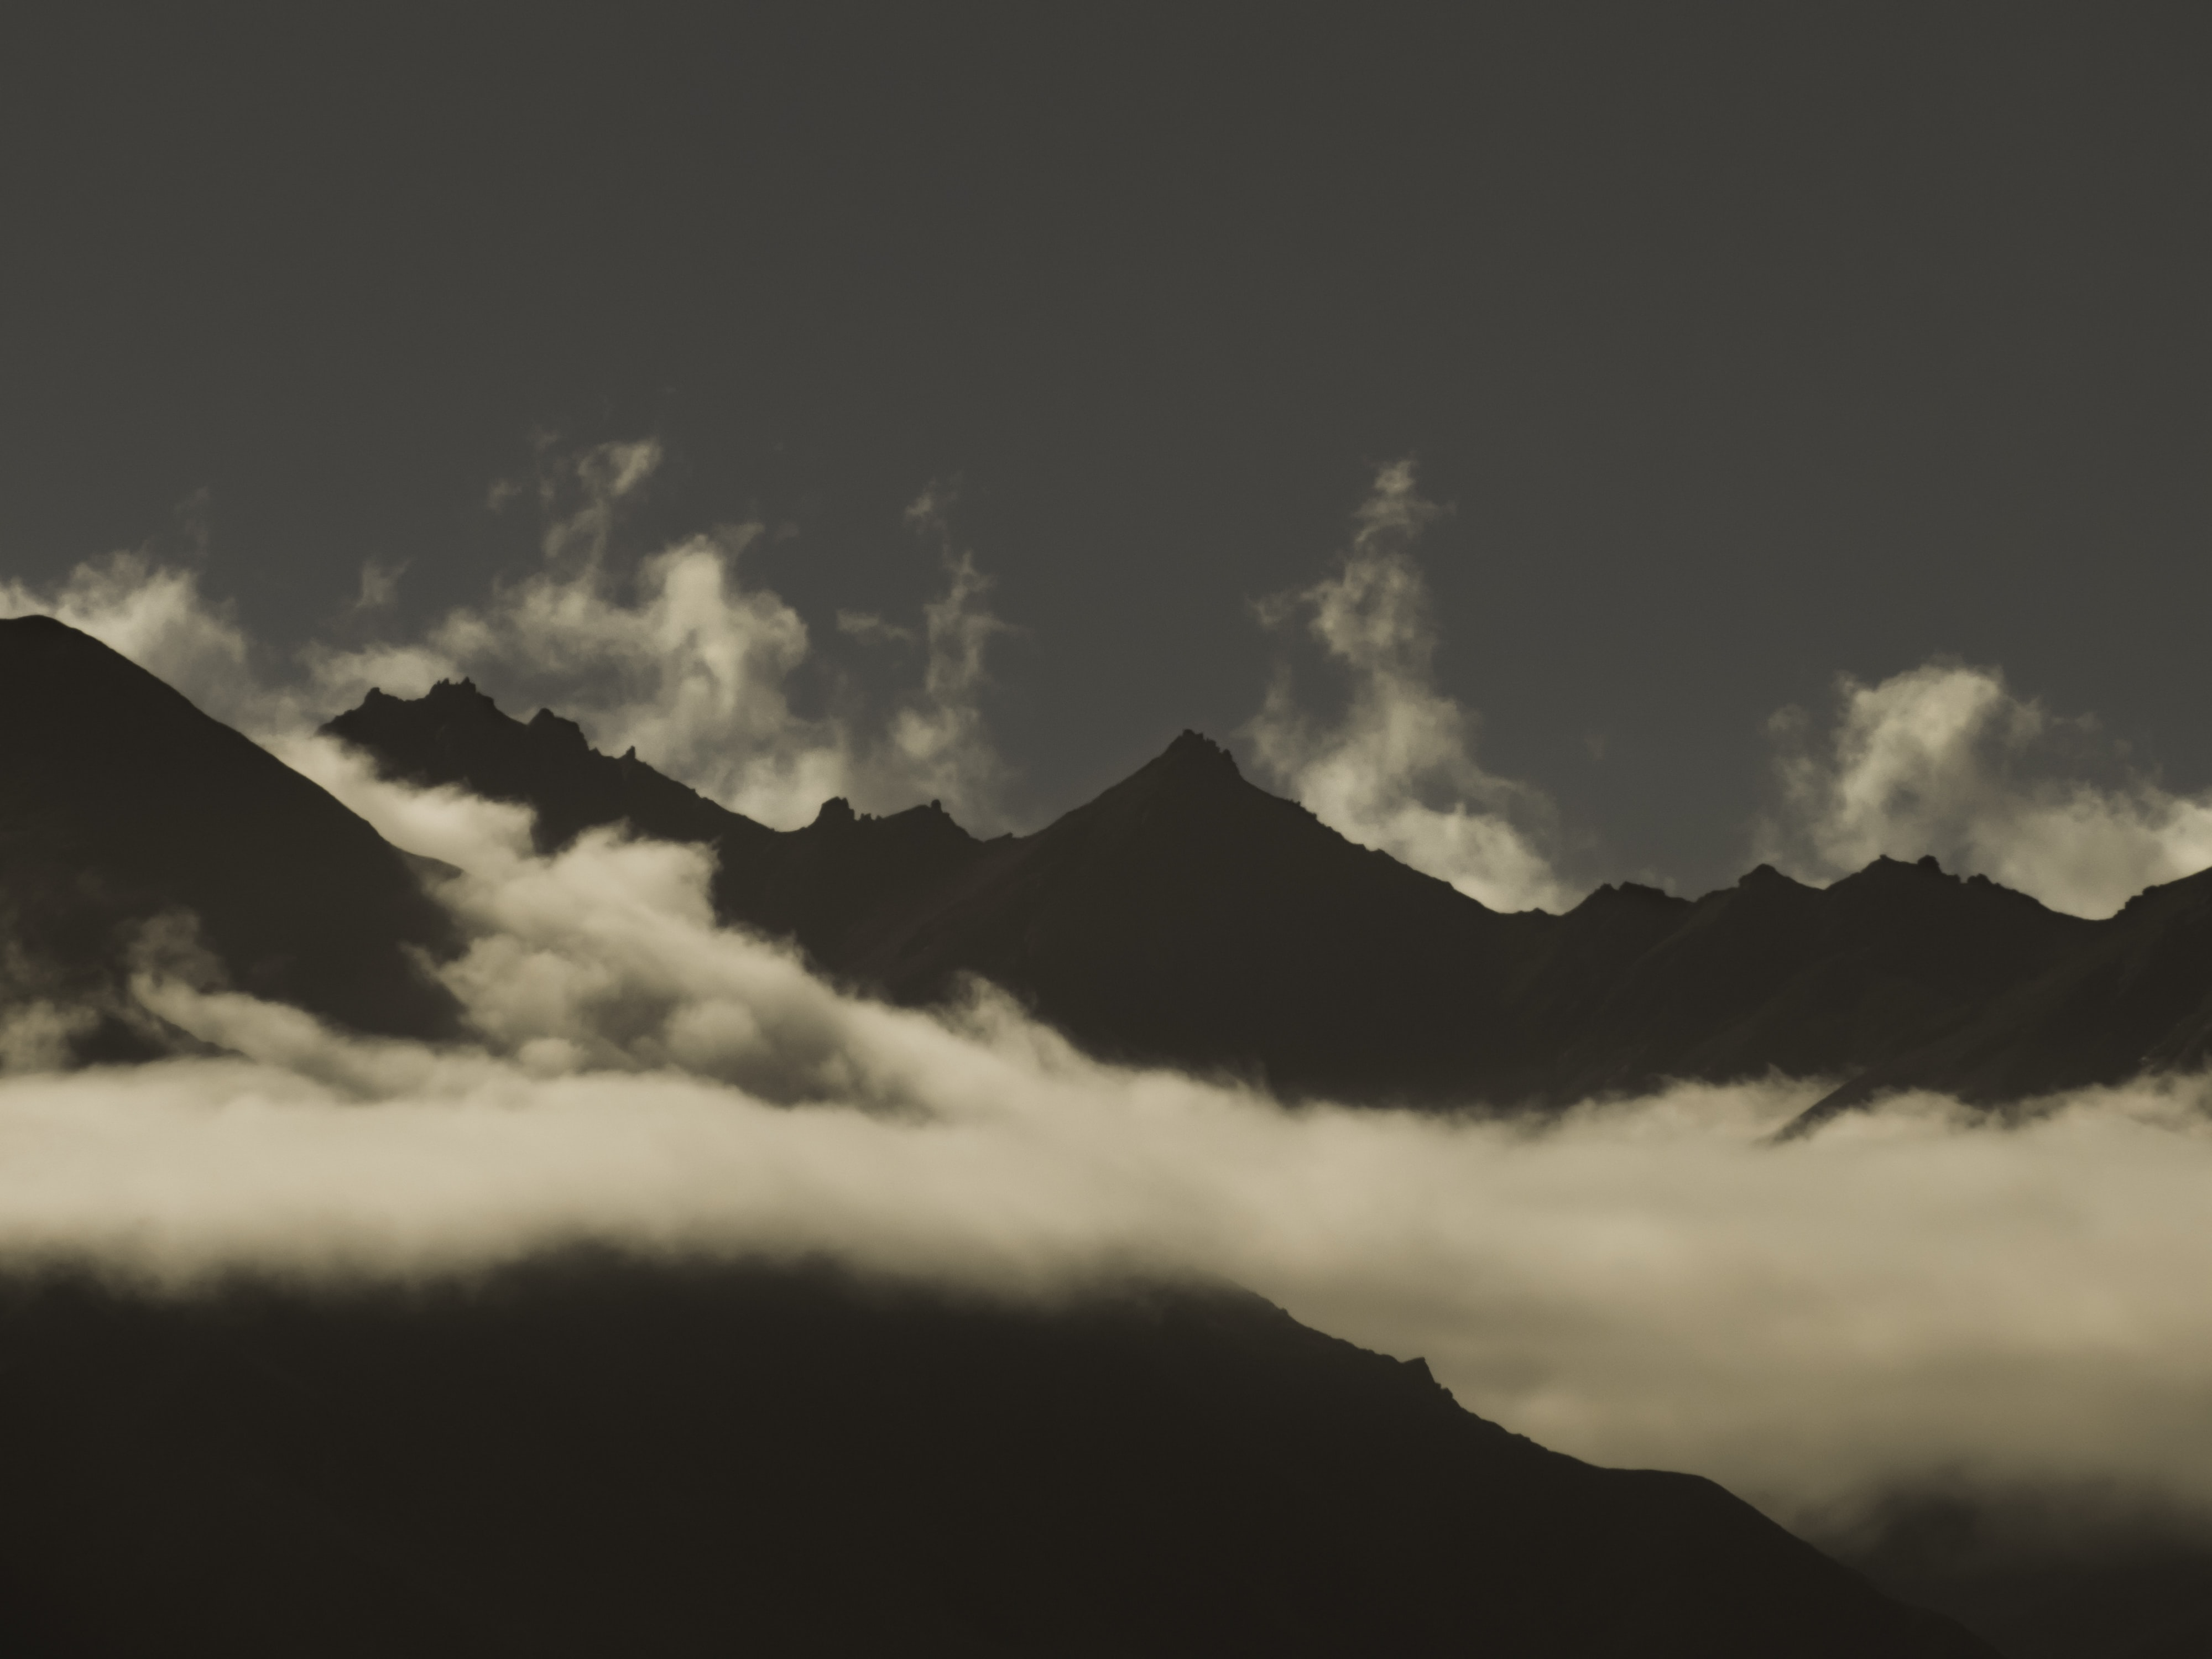 Silhouettes of sharp mountain peaks enveloped in white clouds near Lake Wanaka